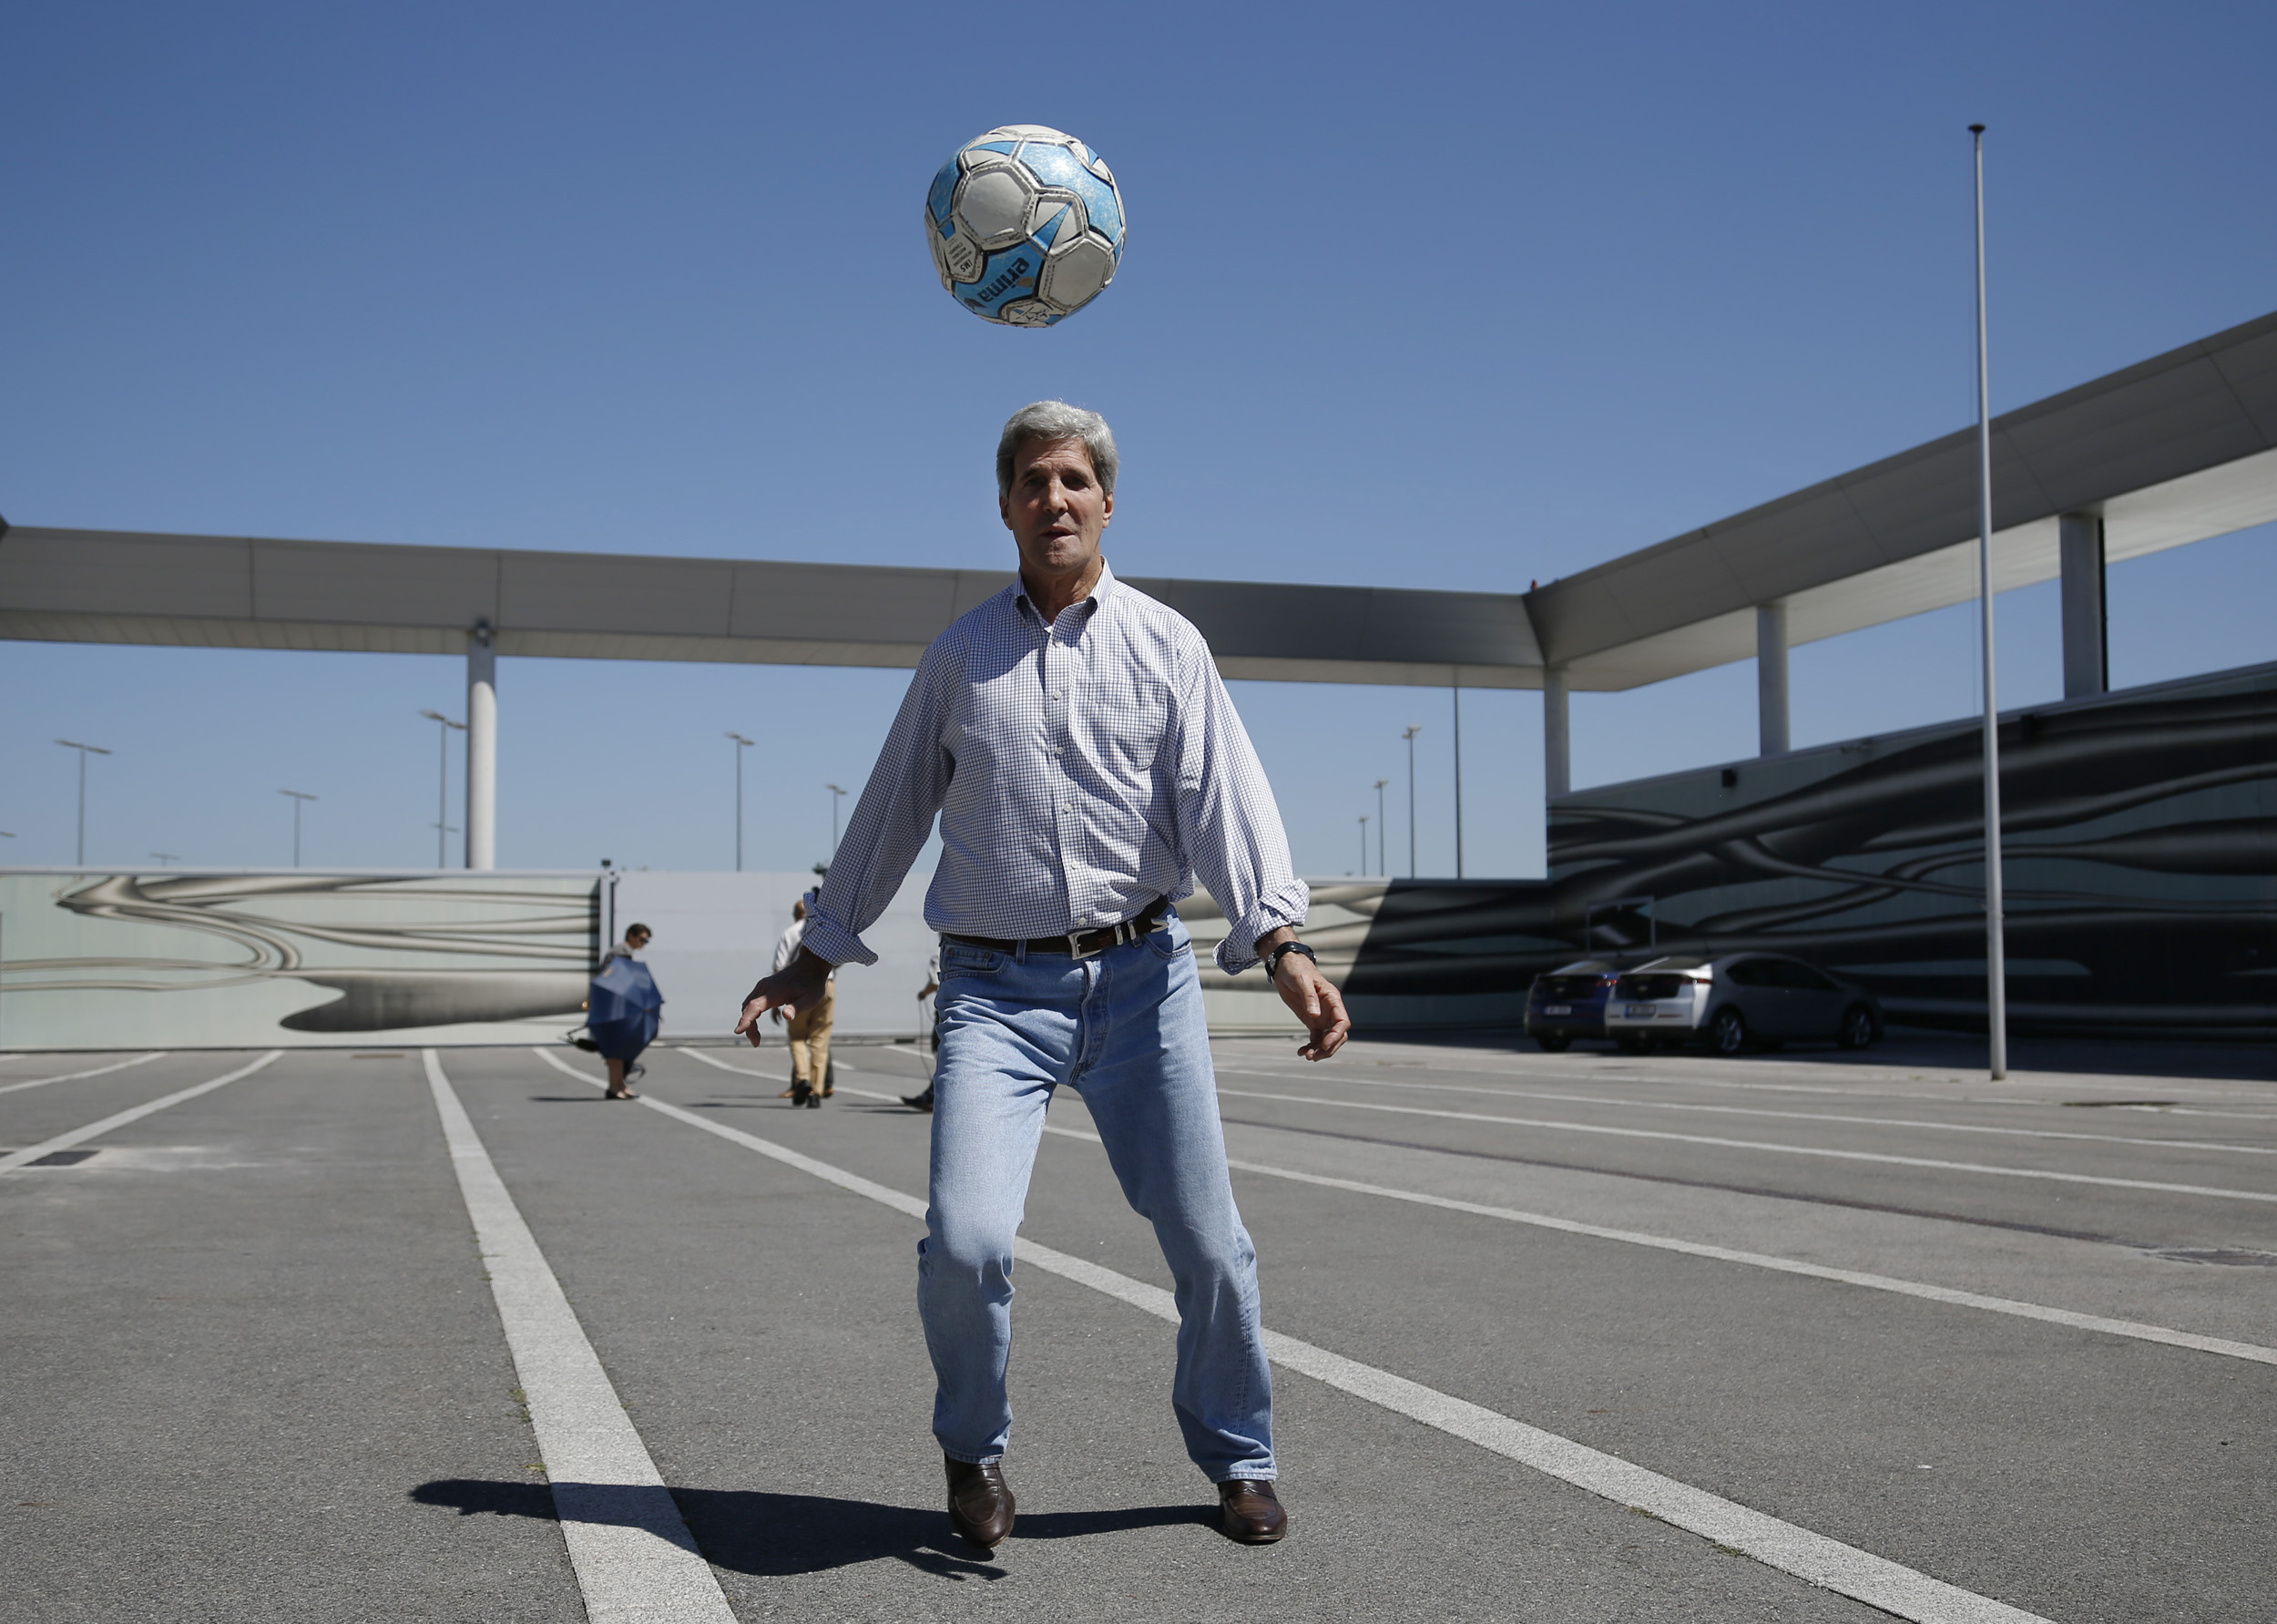 John Kerry playing with a soccer ball